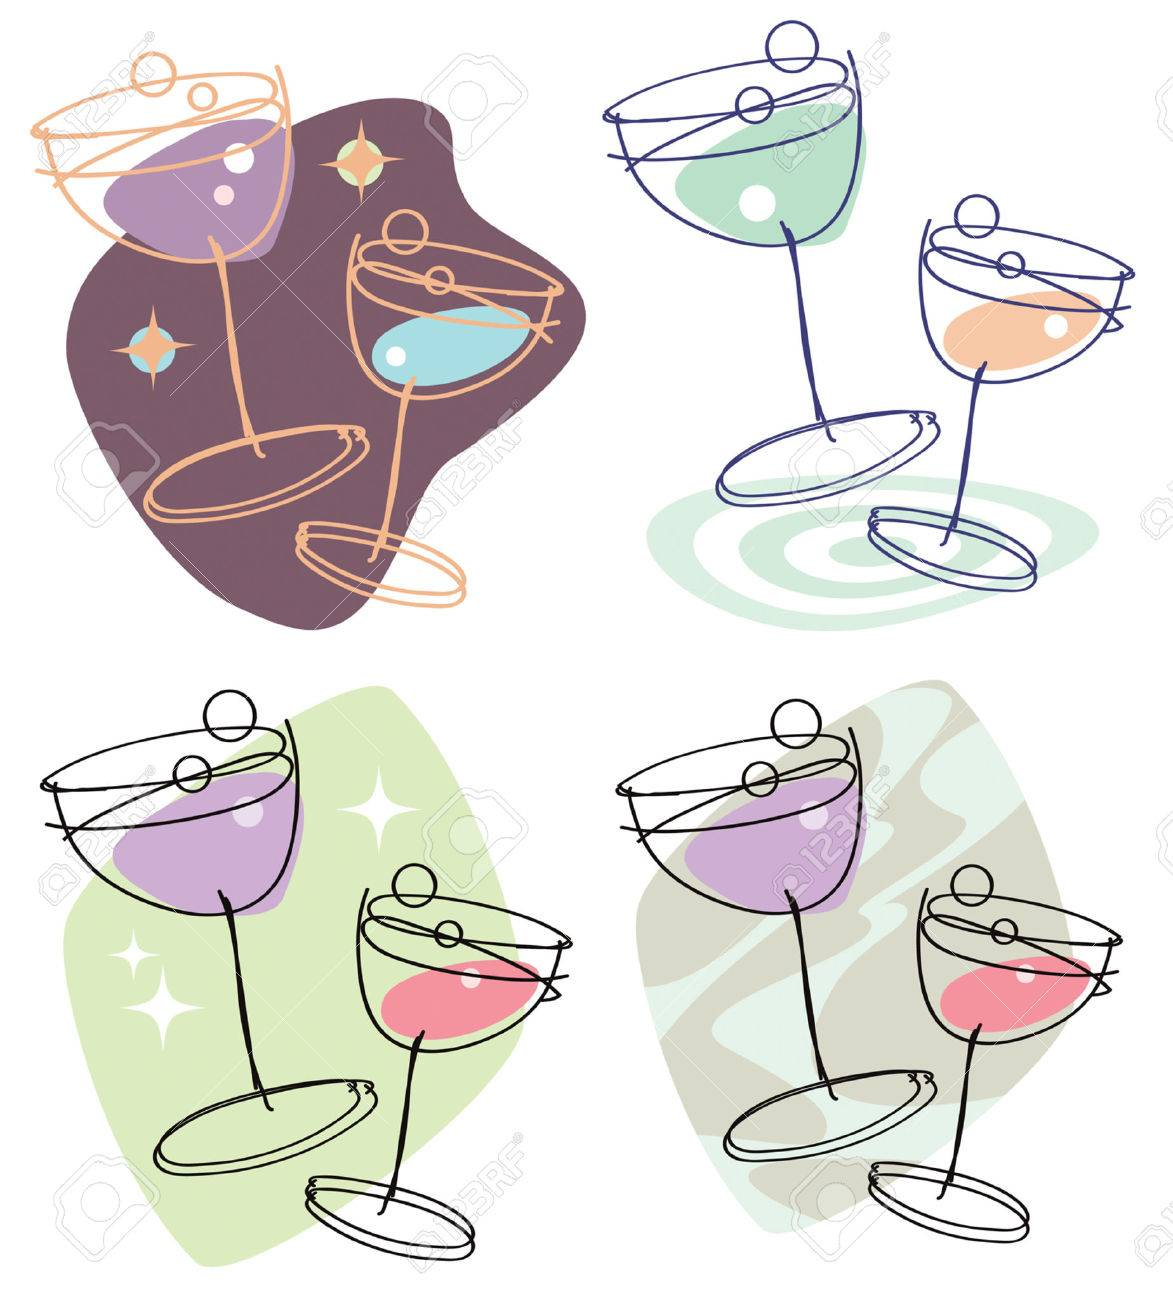 Set of 4 stylish line-drawing illustrations showing two wine glasses with differing colors and backgrounds. Easily editable. - 4400194